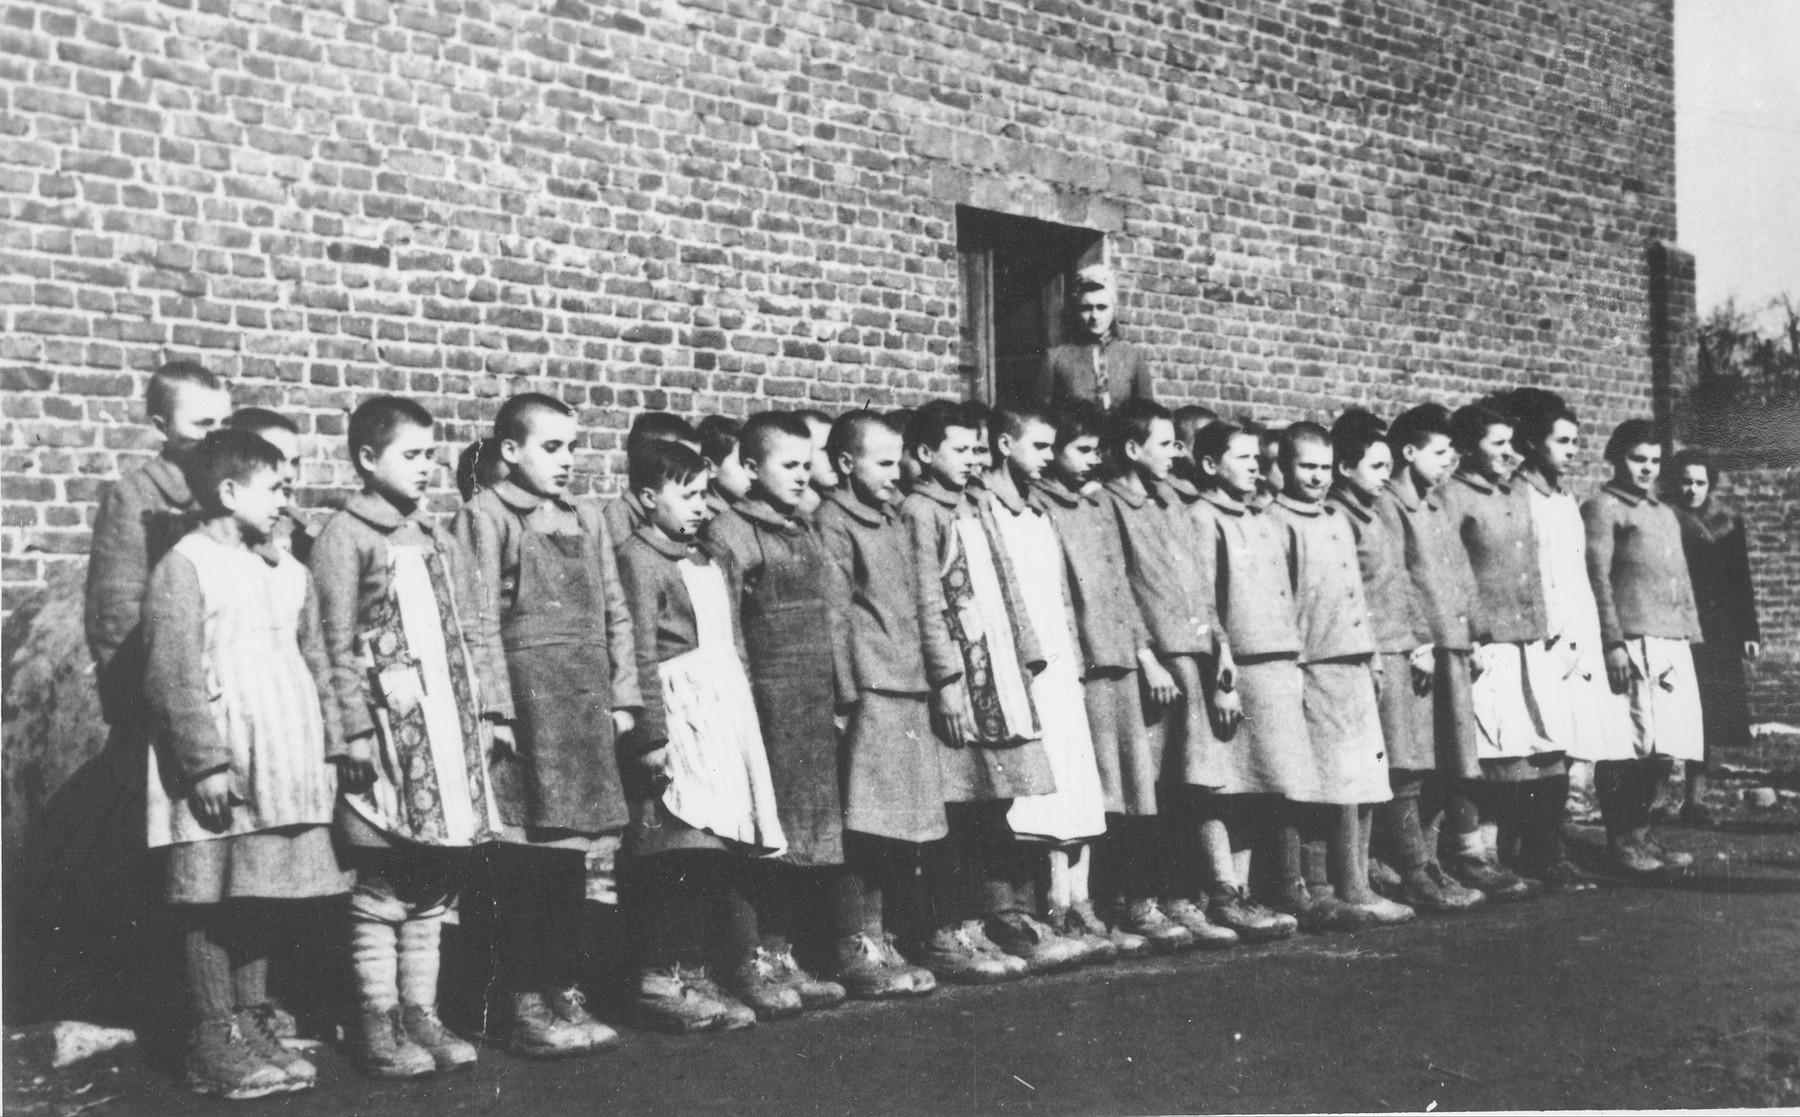 Girls are assembled for roll call at the Jugend- schutzlager Litzmannstadt, a concentration camp for Polish juveniles.  Behind them stands the camp commandant Eugenie Pohl.